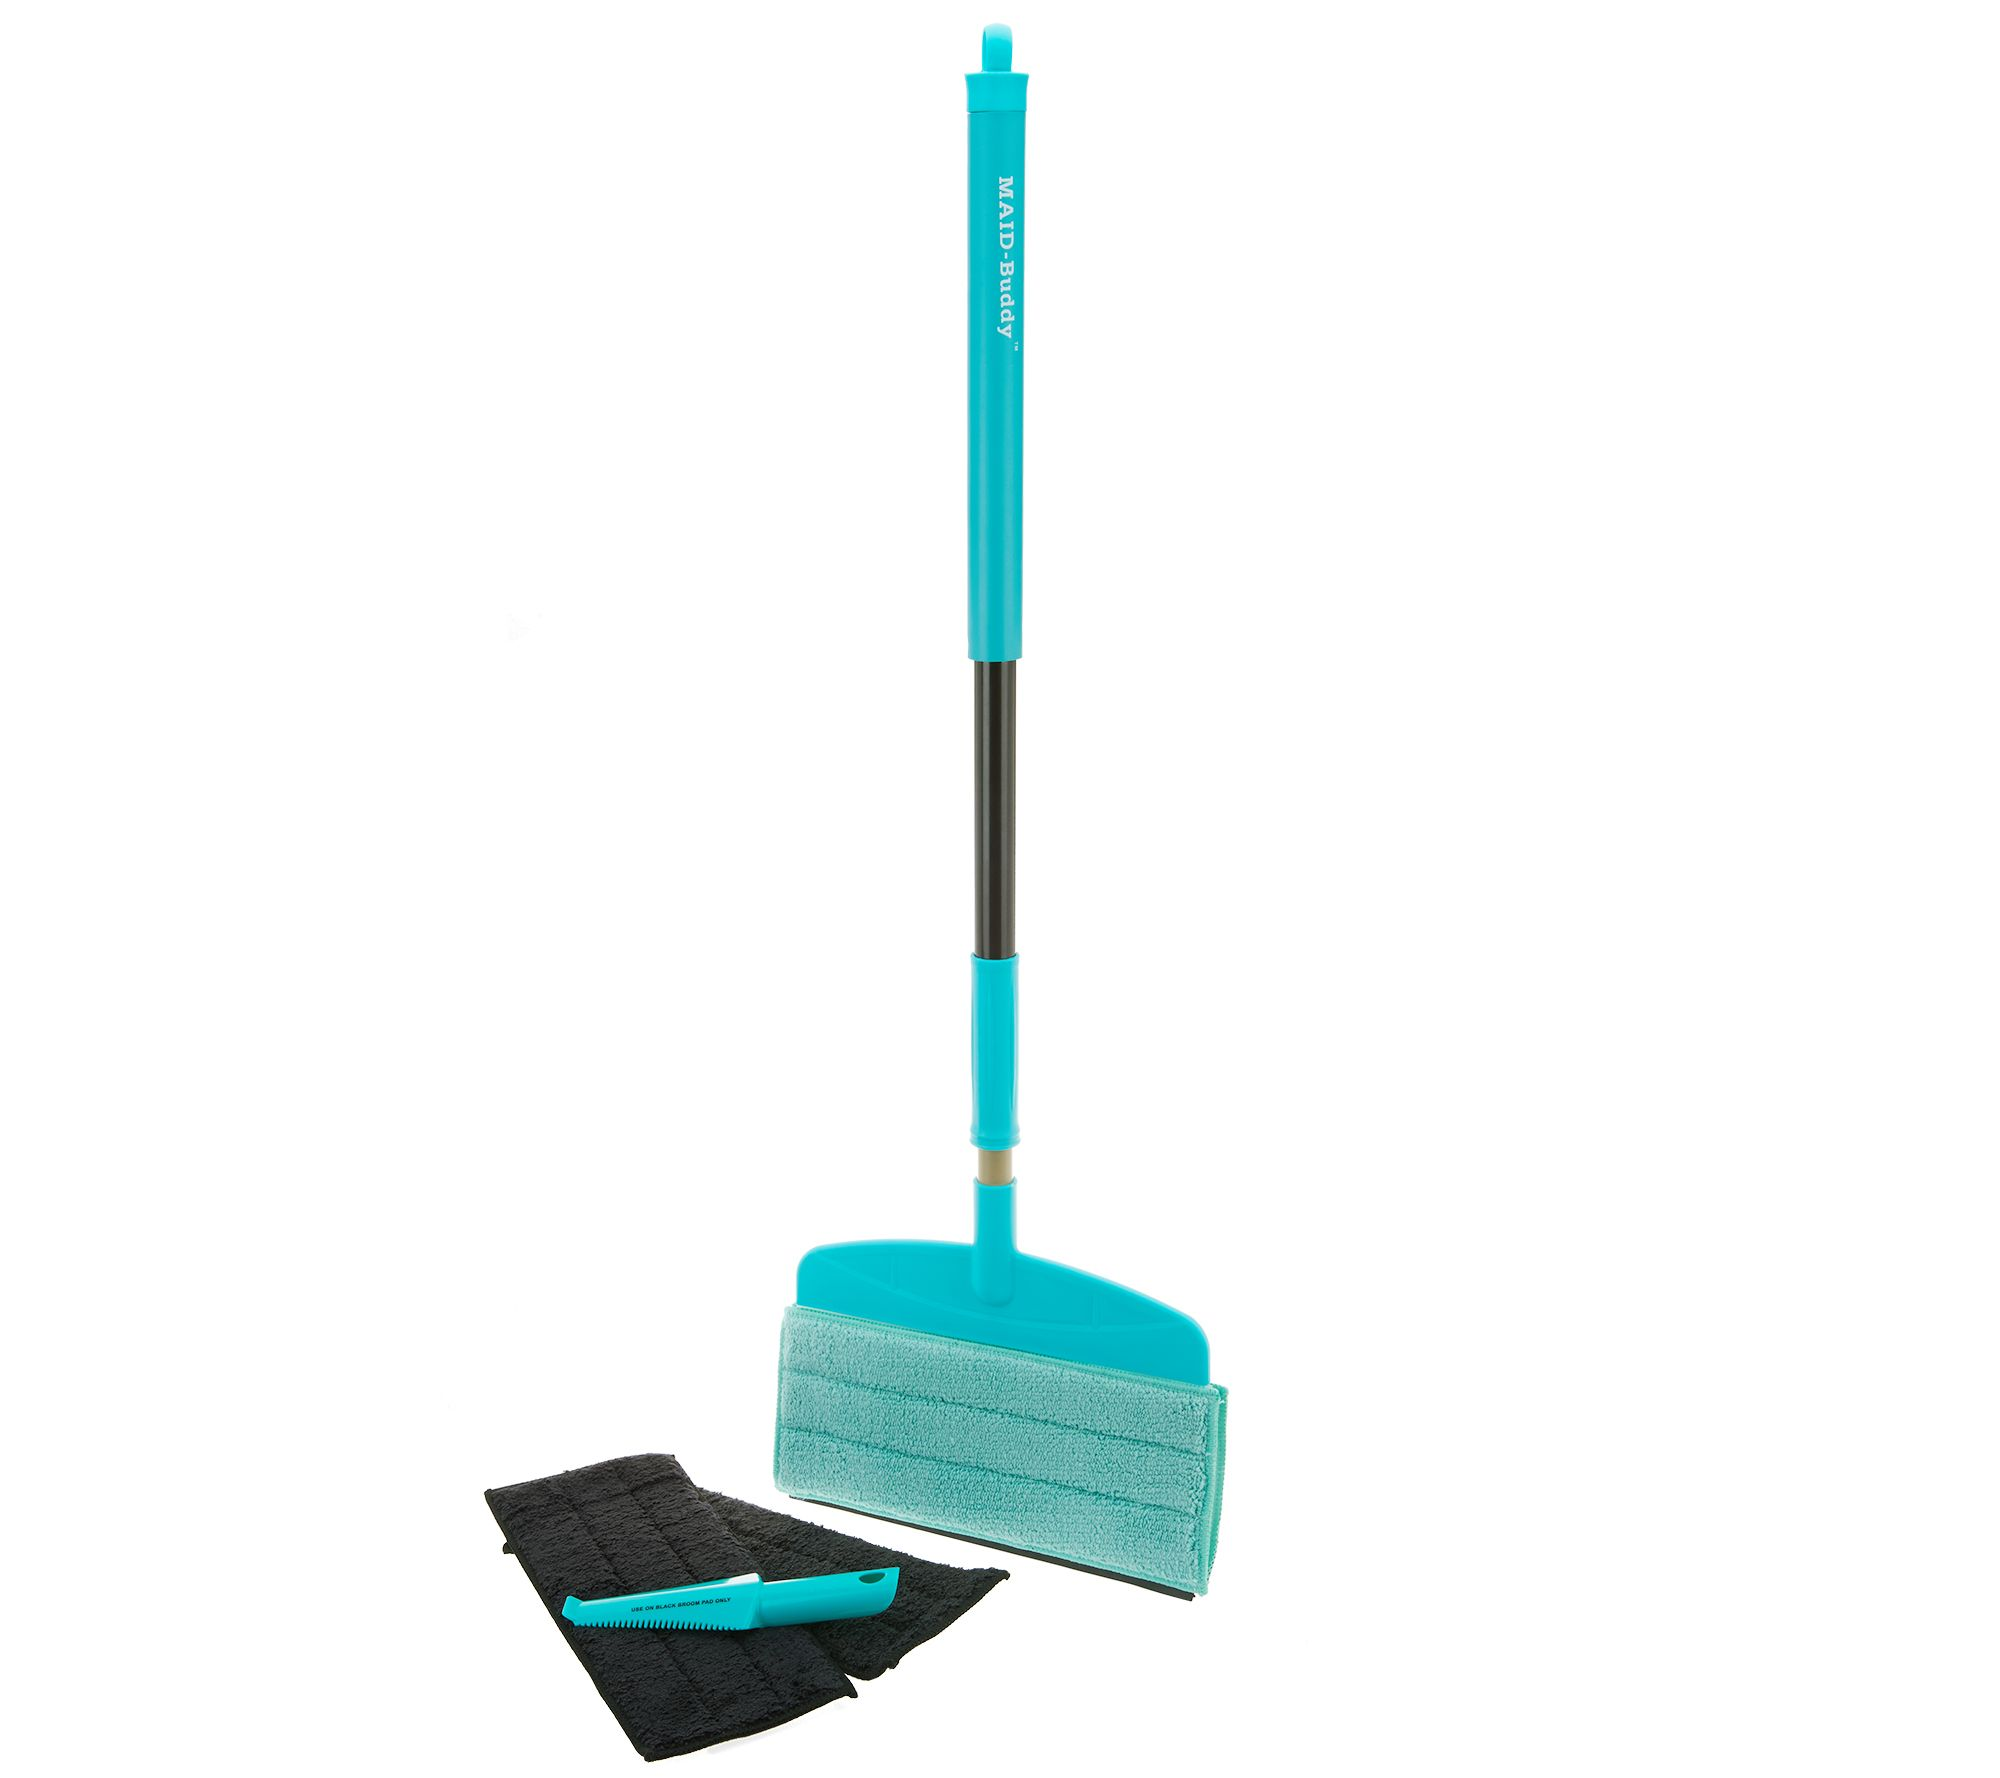 MAID-Buddy Flexible Flat Head Mop & Duster Broom Cleaning System - V35241